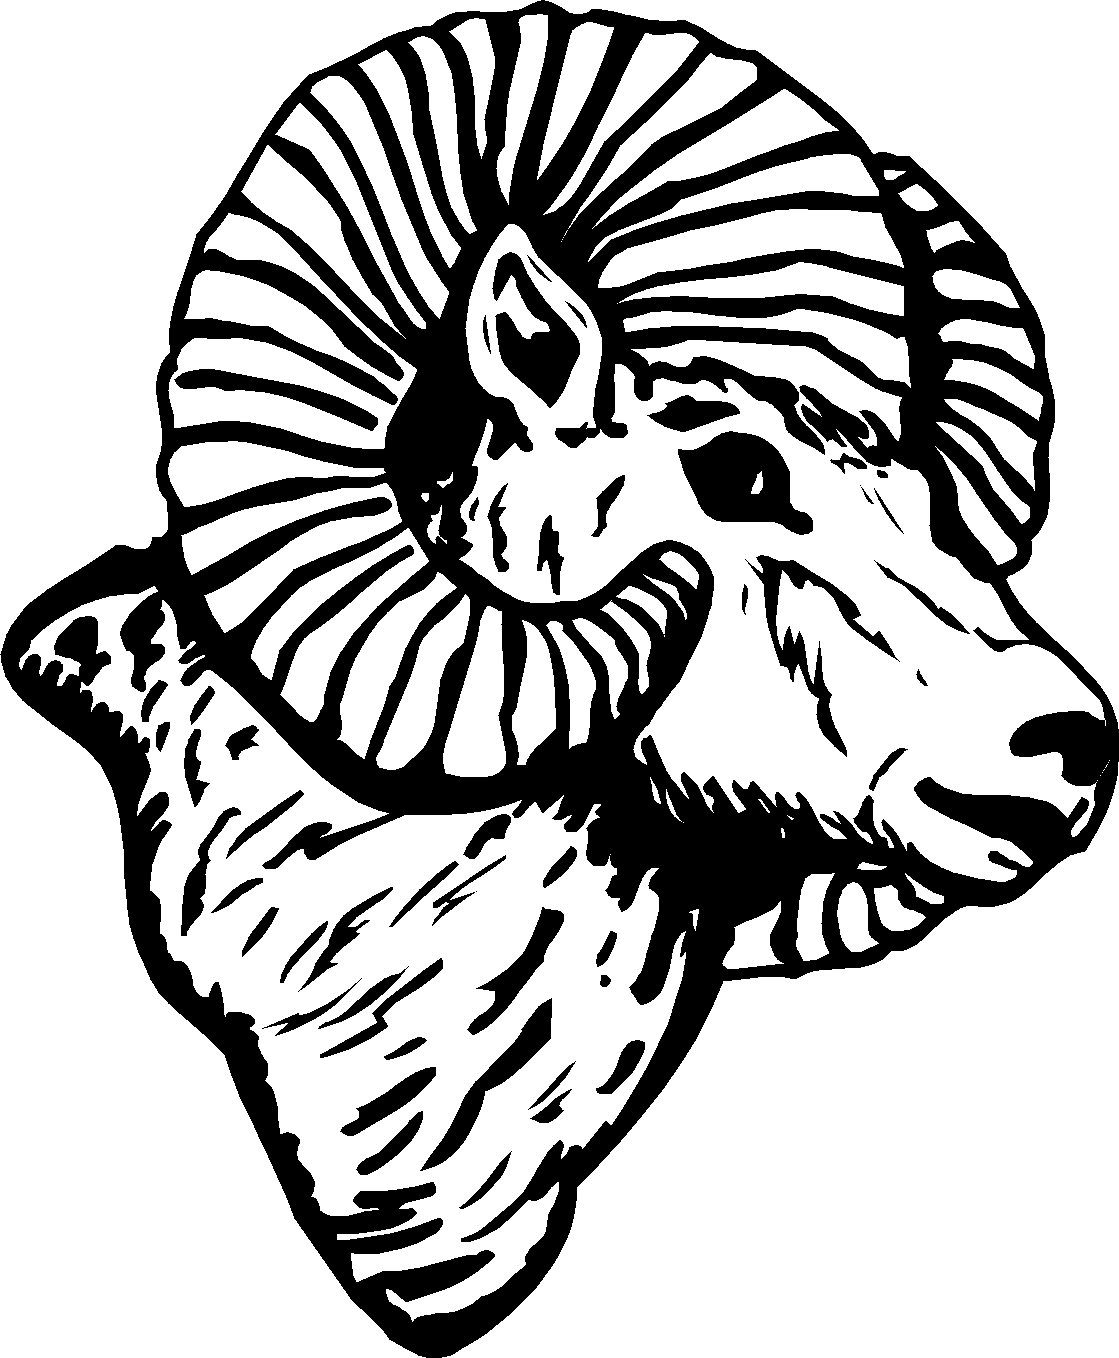 "RAMS HEAD VINYL DECAL STICKER 7"" TALL & DETAILED!!"